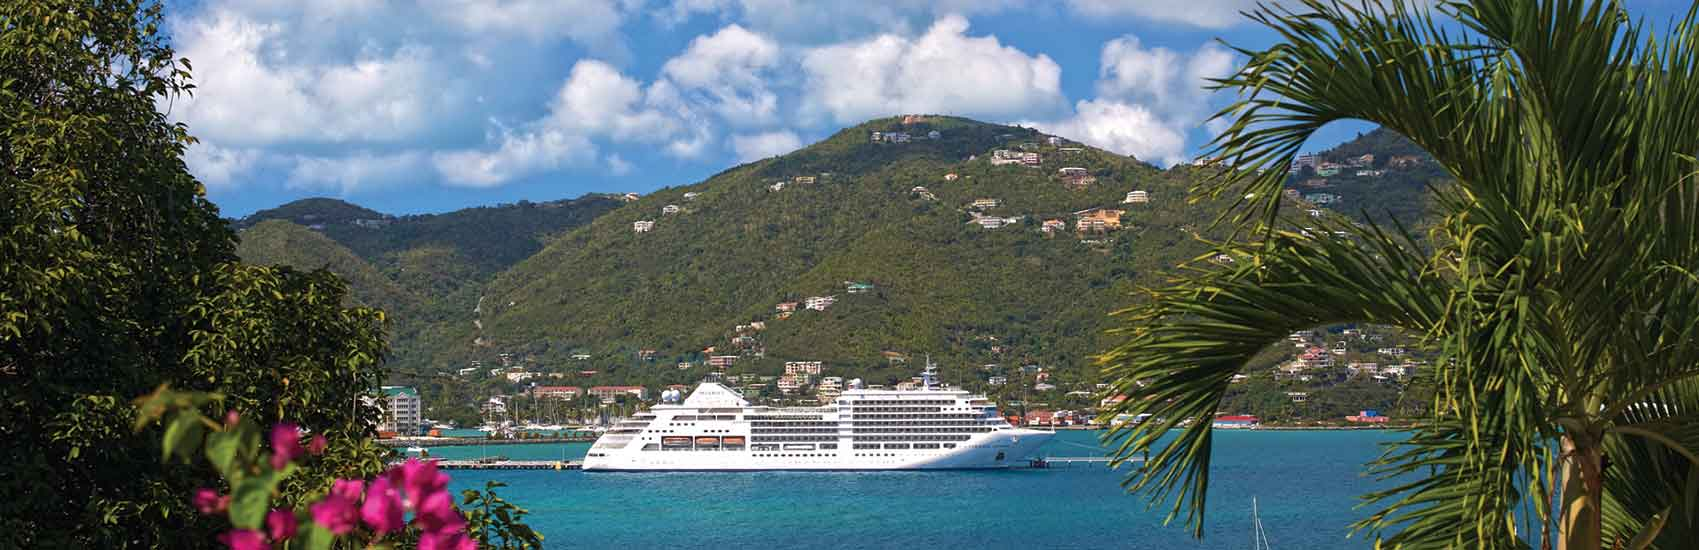 Silversea Caribbean Air Offer